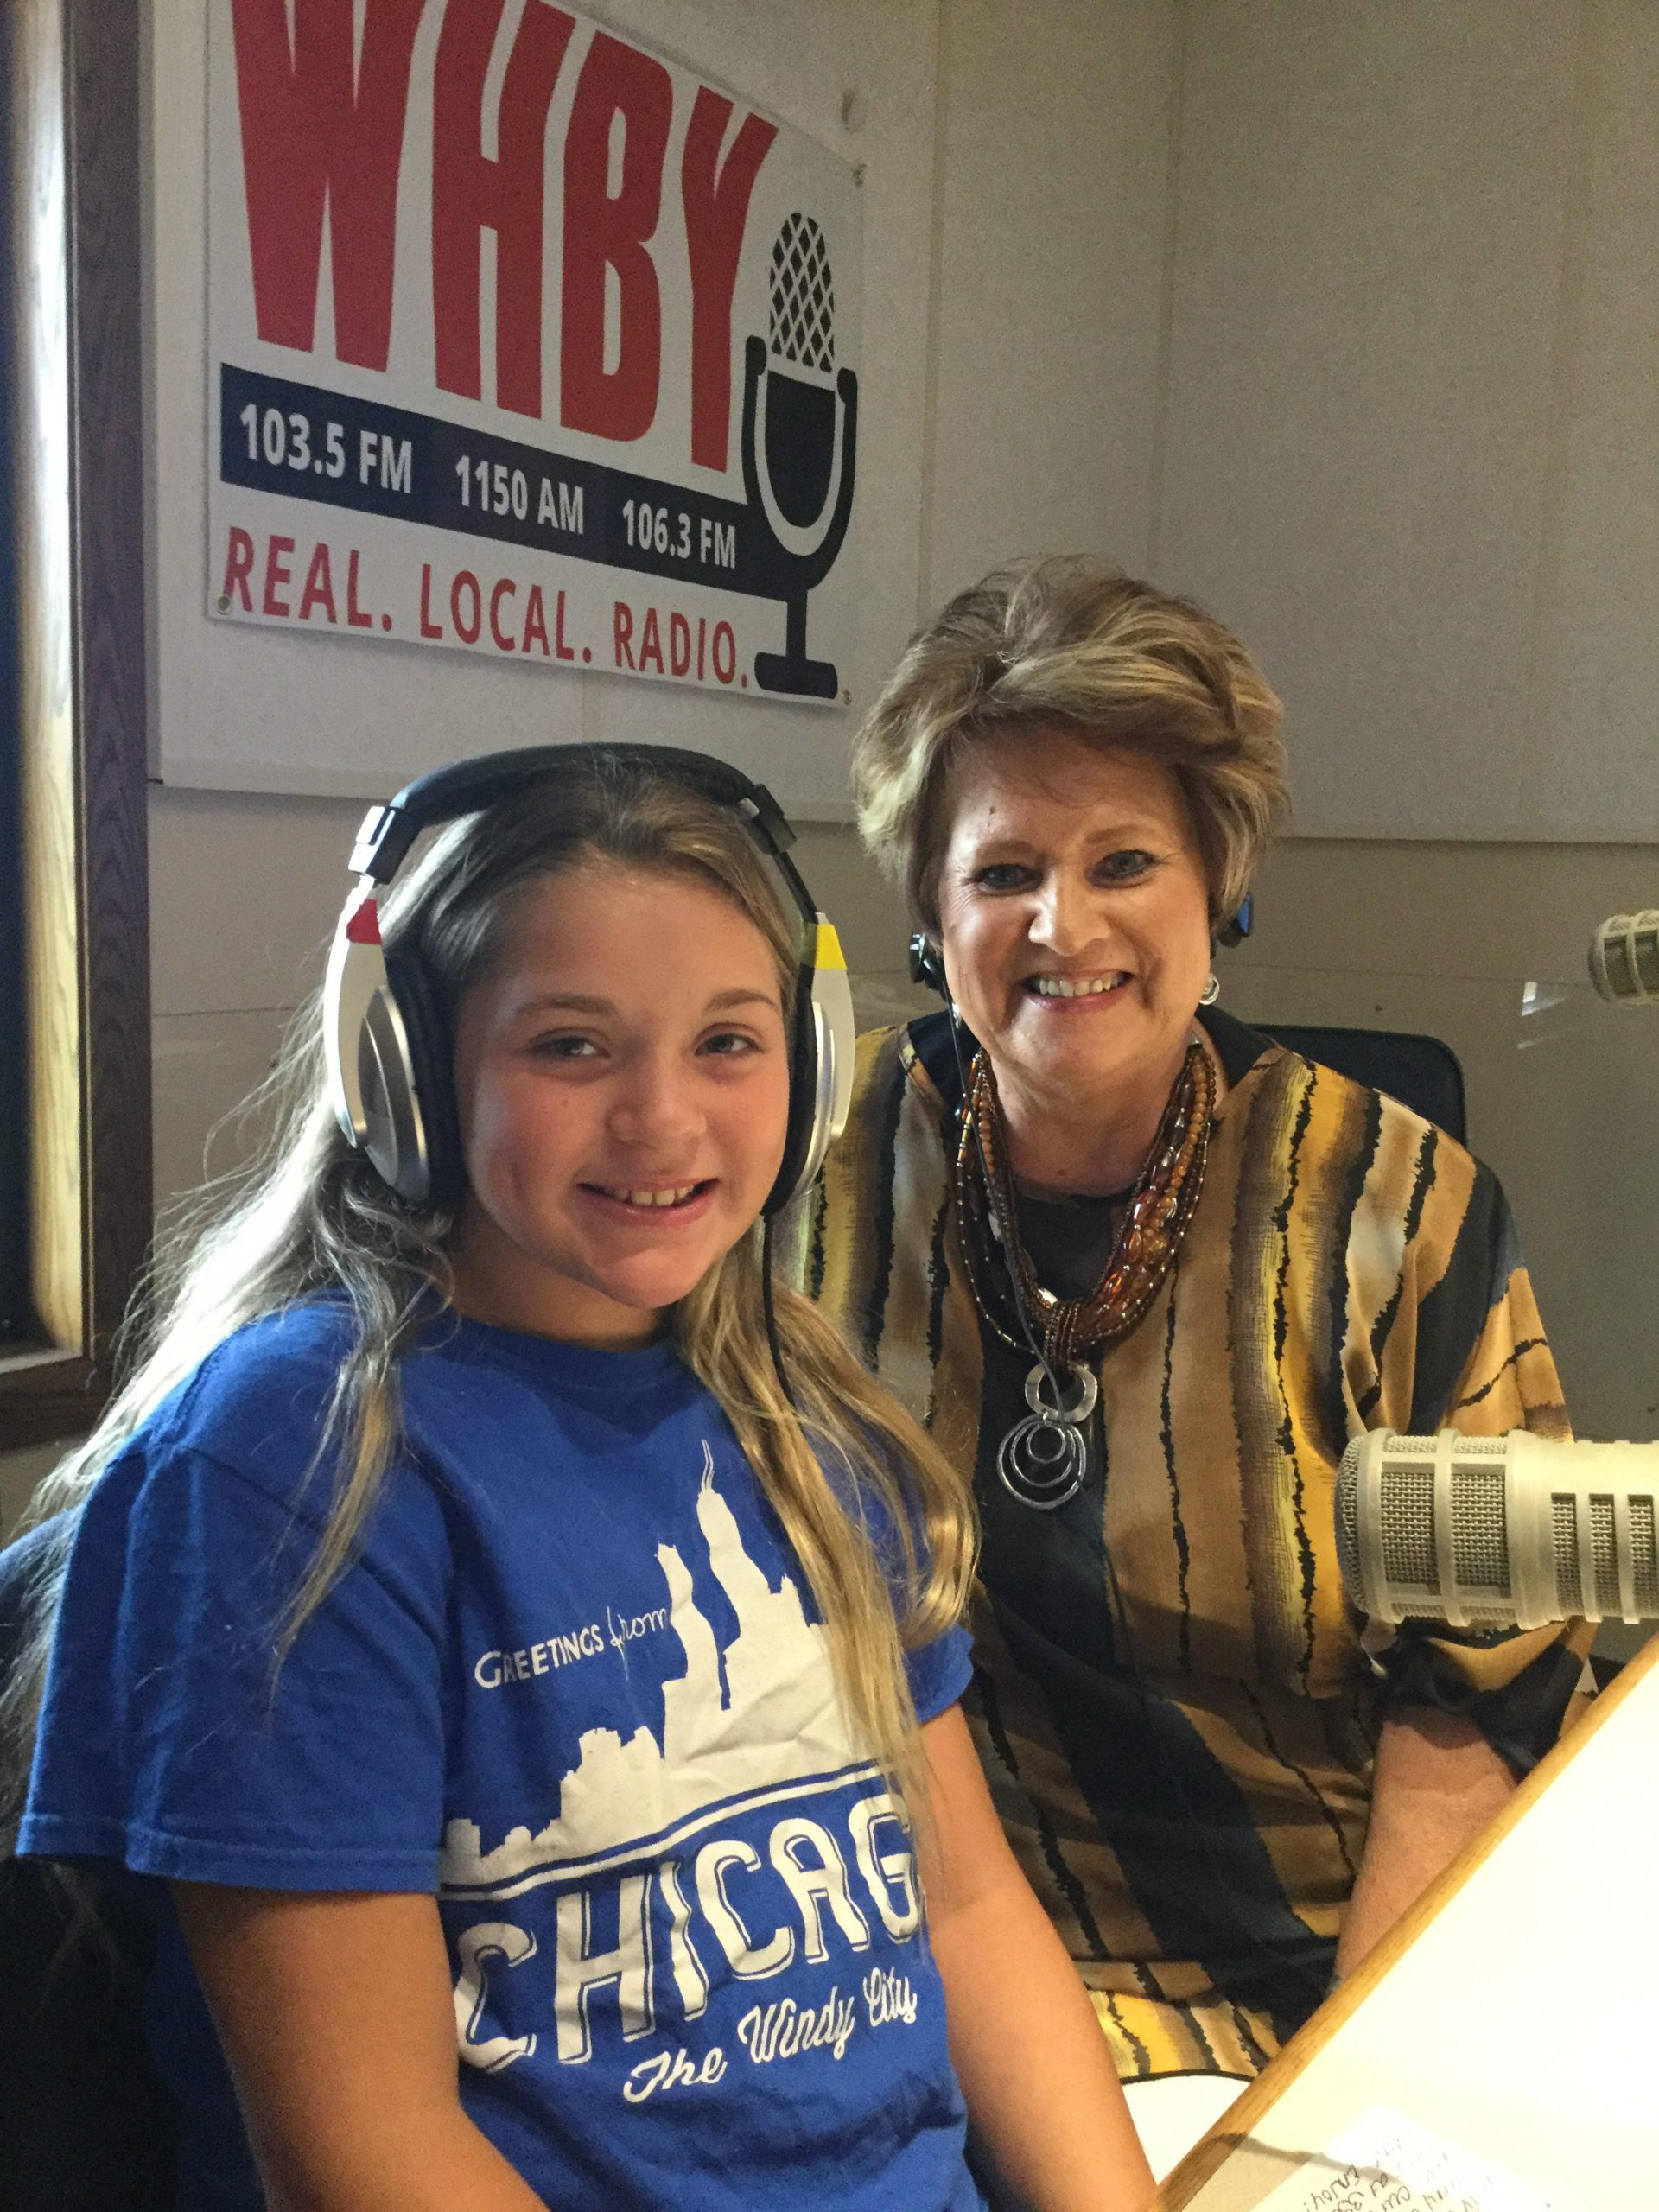 Kids Cooking with Kathy:  Irelyn Christianson, Age 10